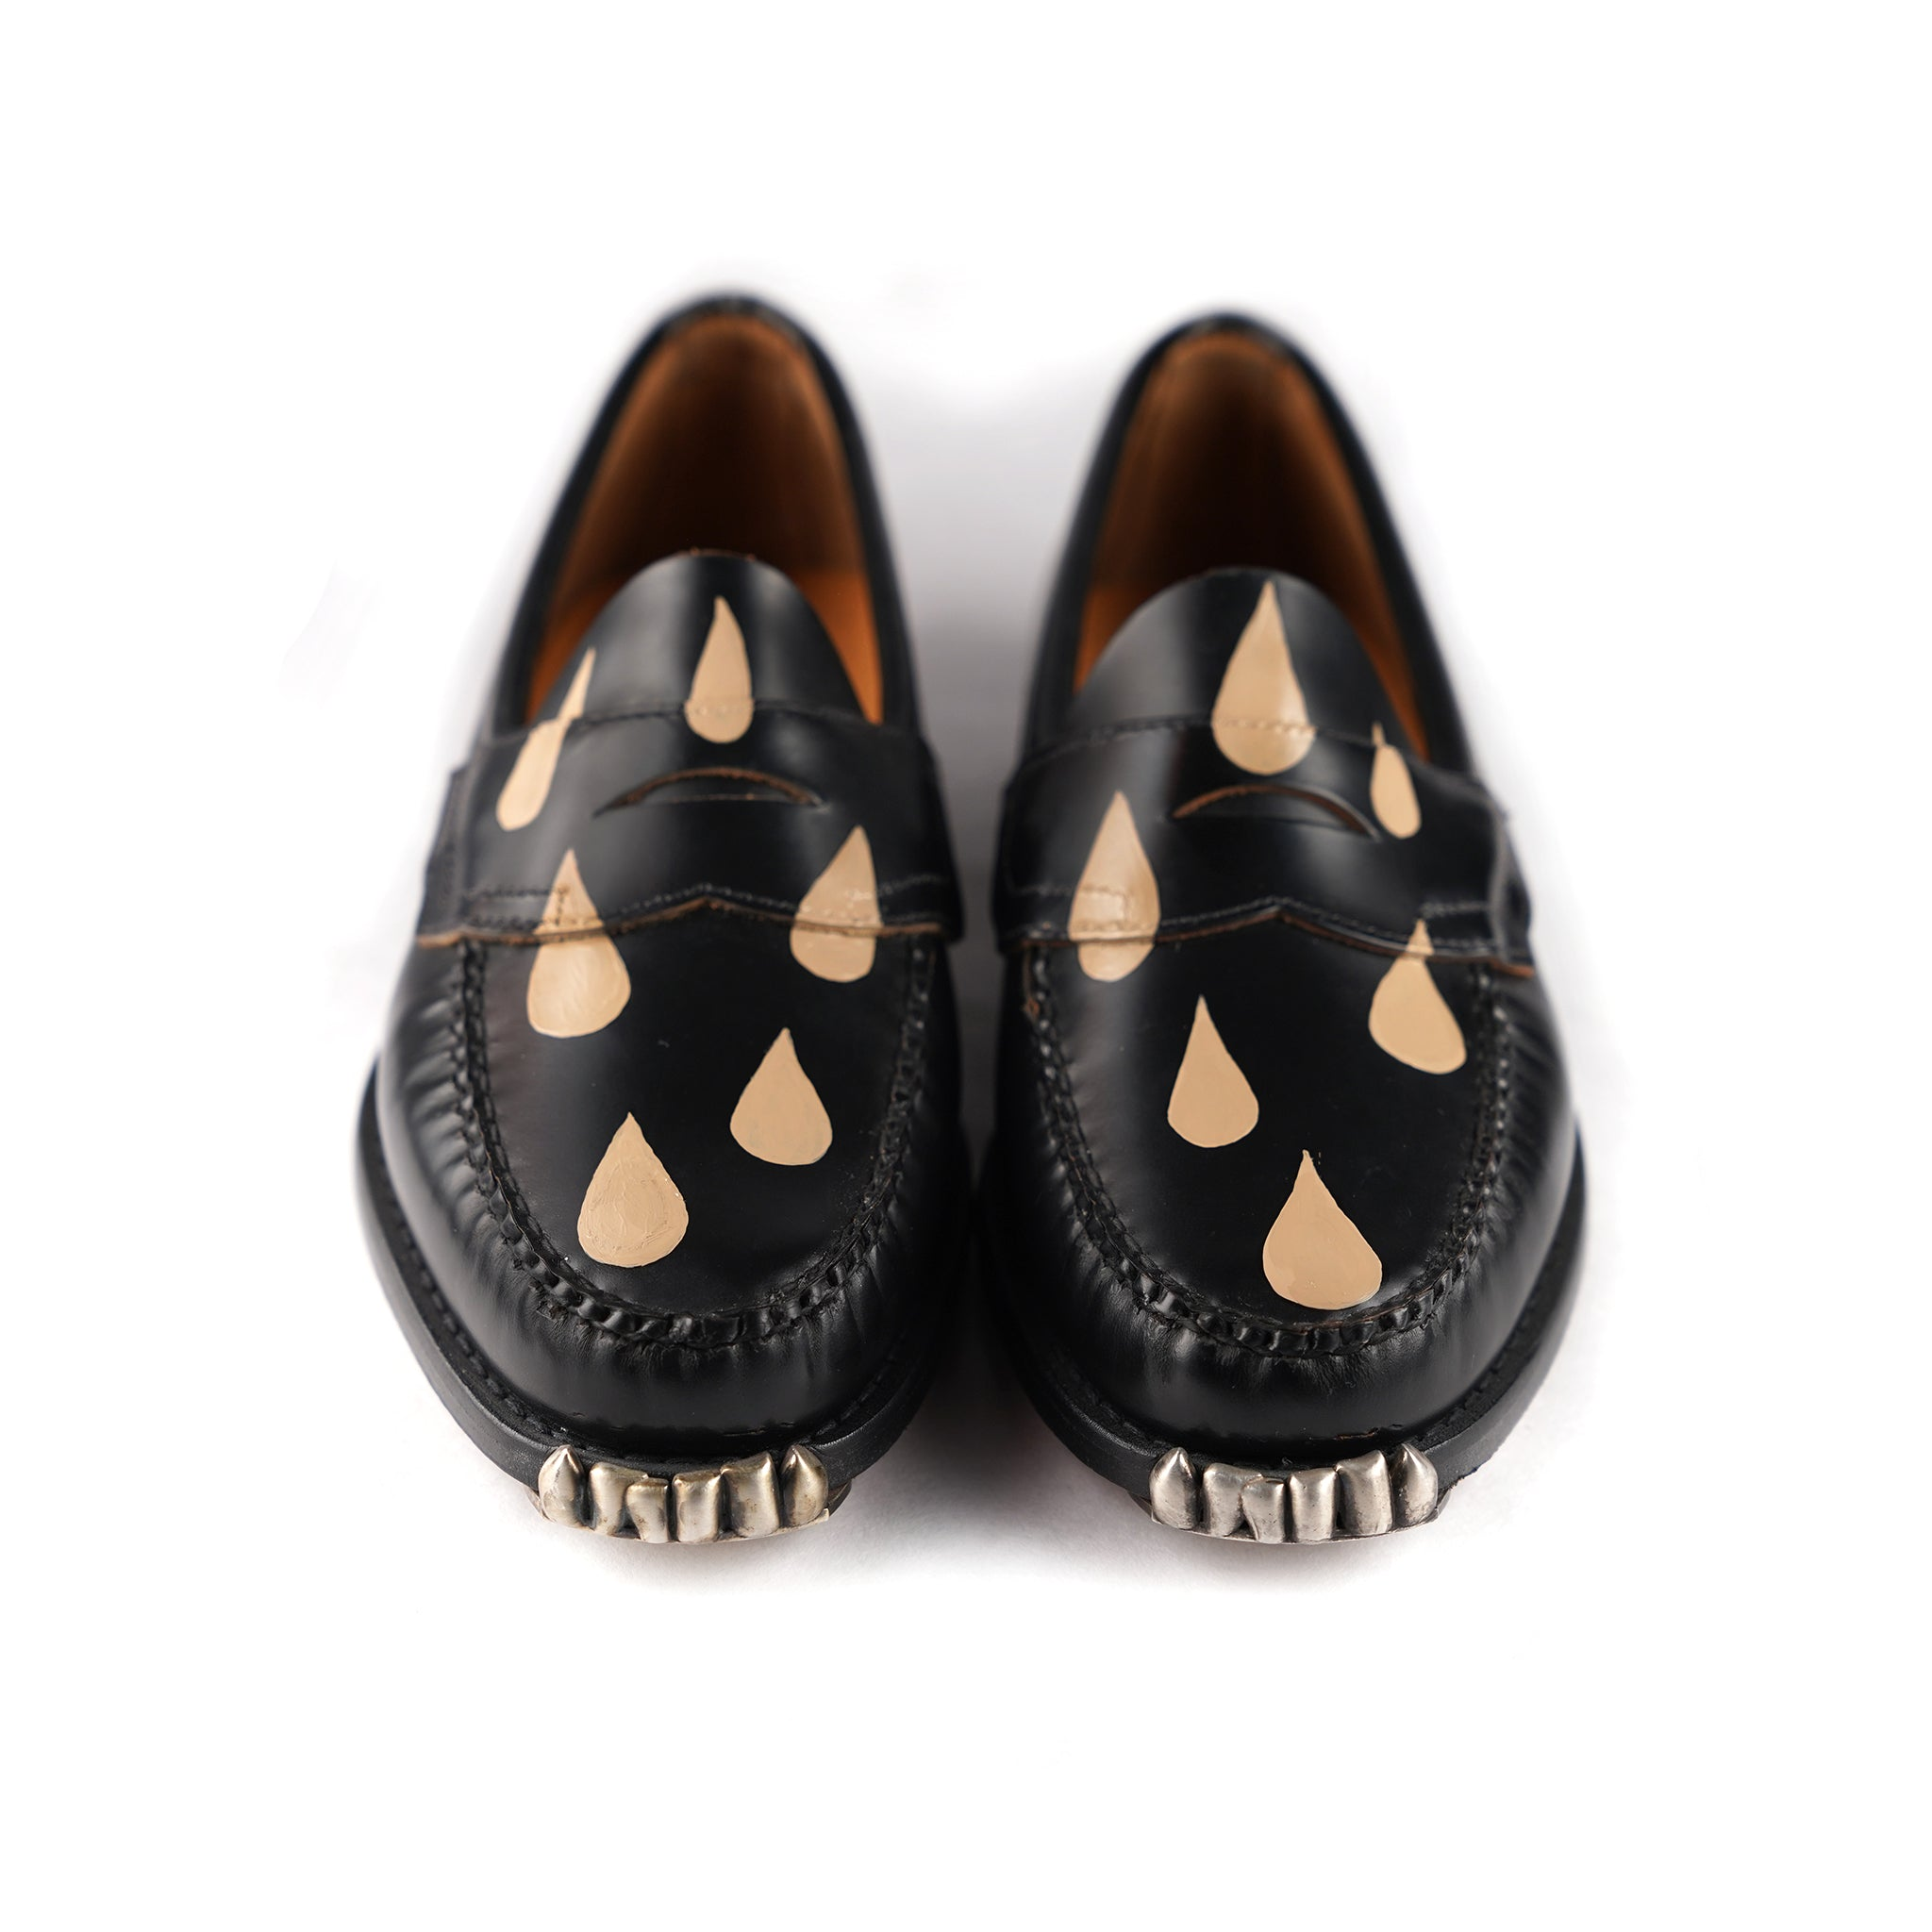 Black+Tan Drippy Loafer